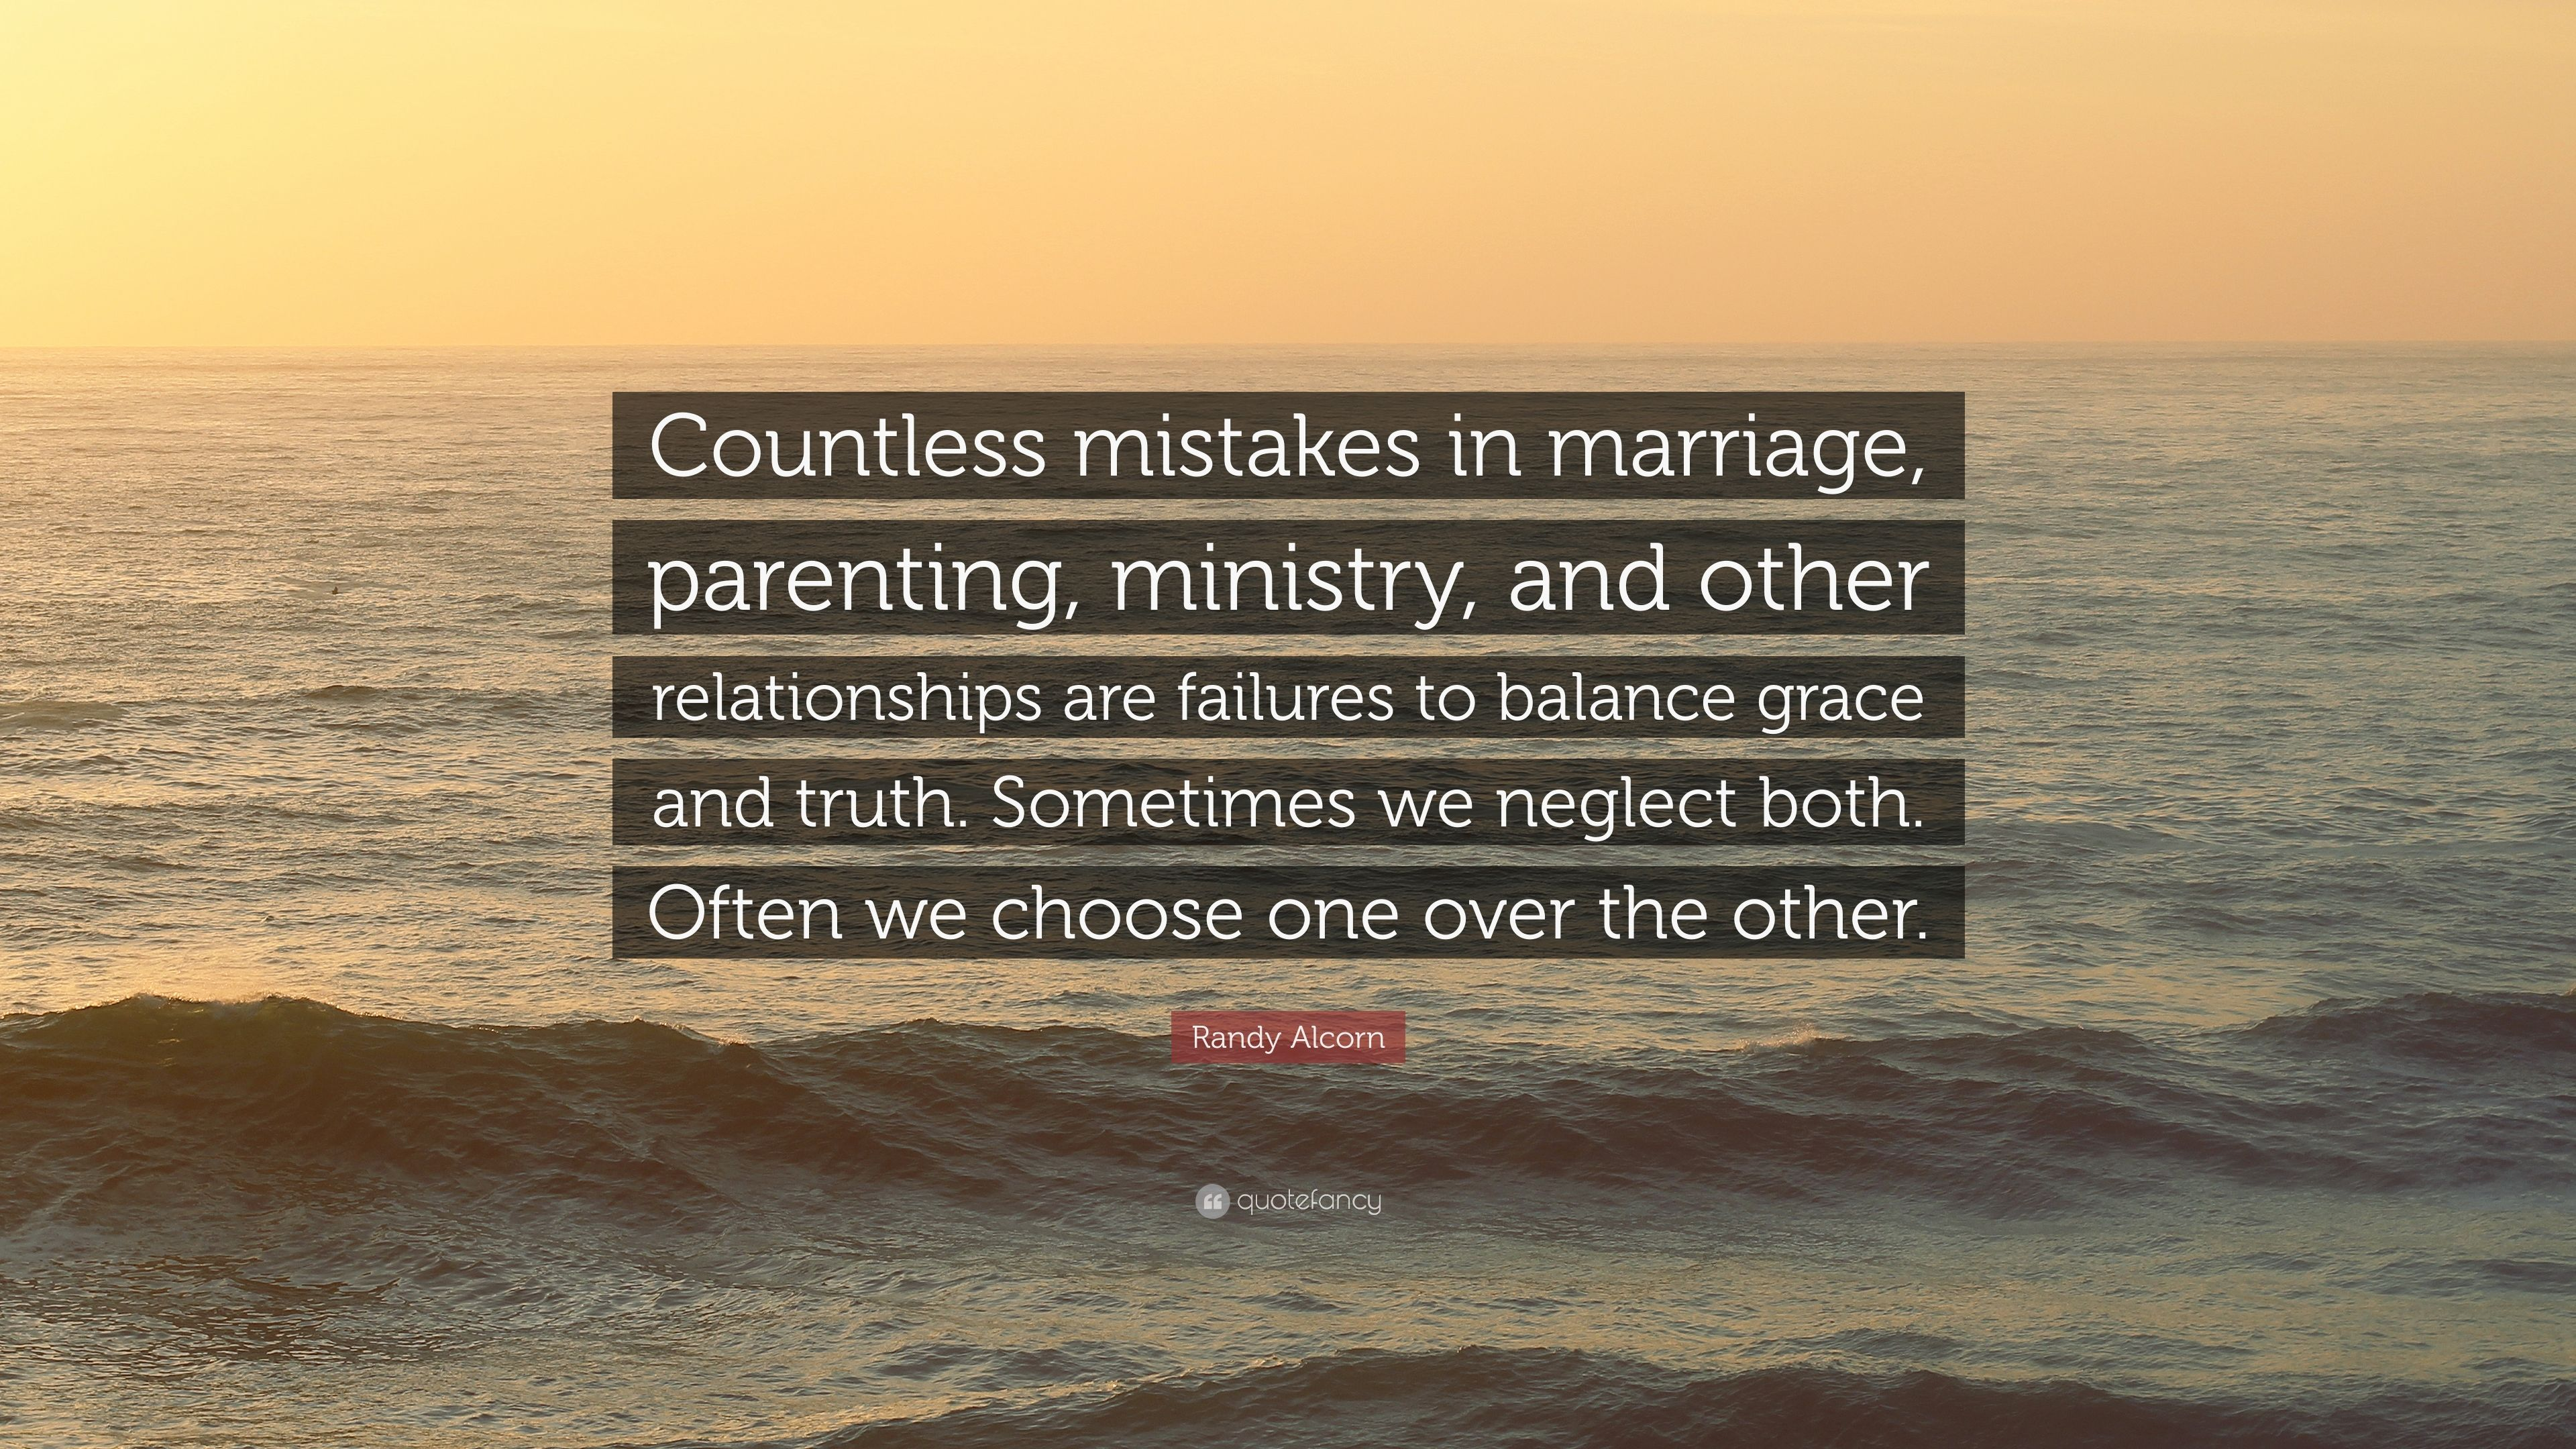 Good Randy Alcorn Quote: U201cCountless Mistakes In Marriage, Parenting, Ministry,  And Other